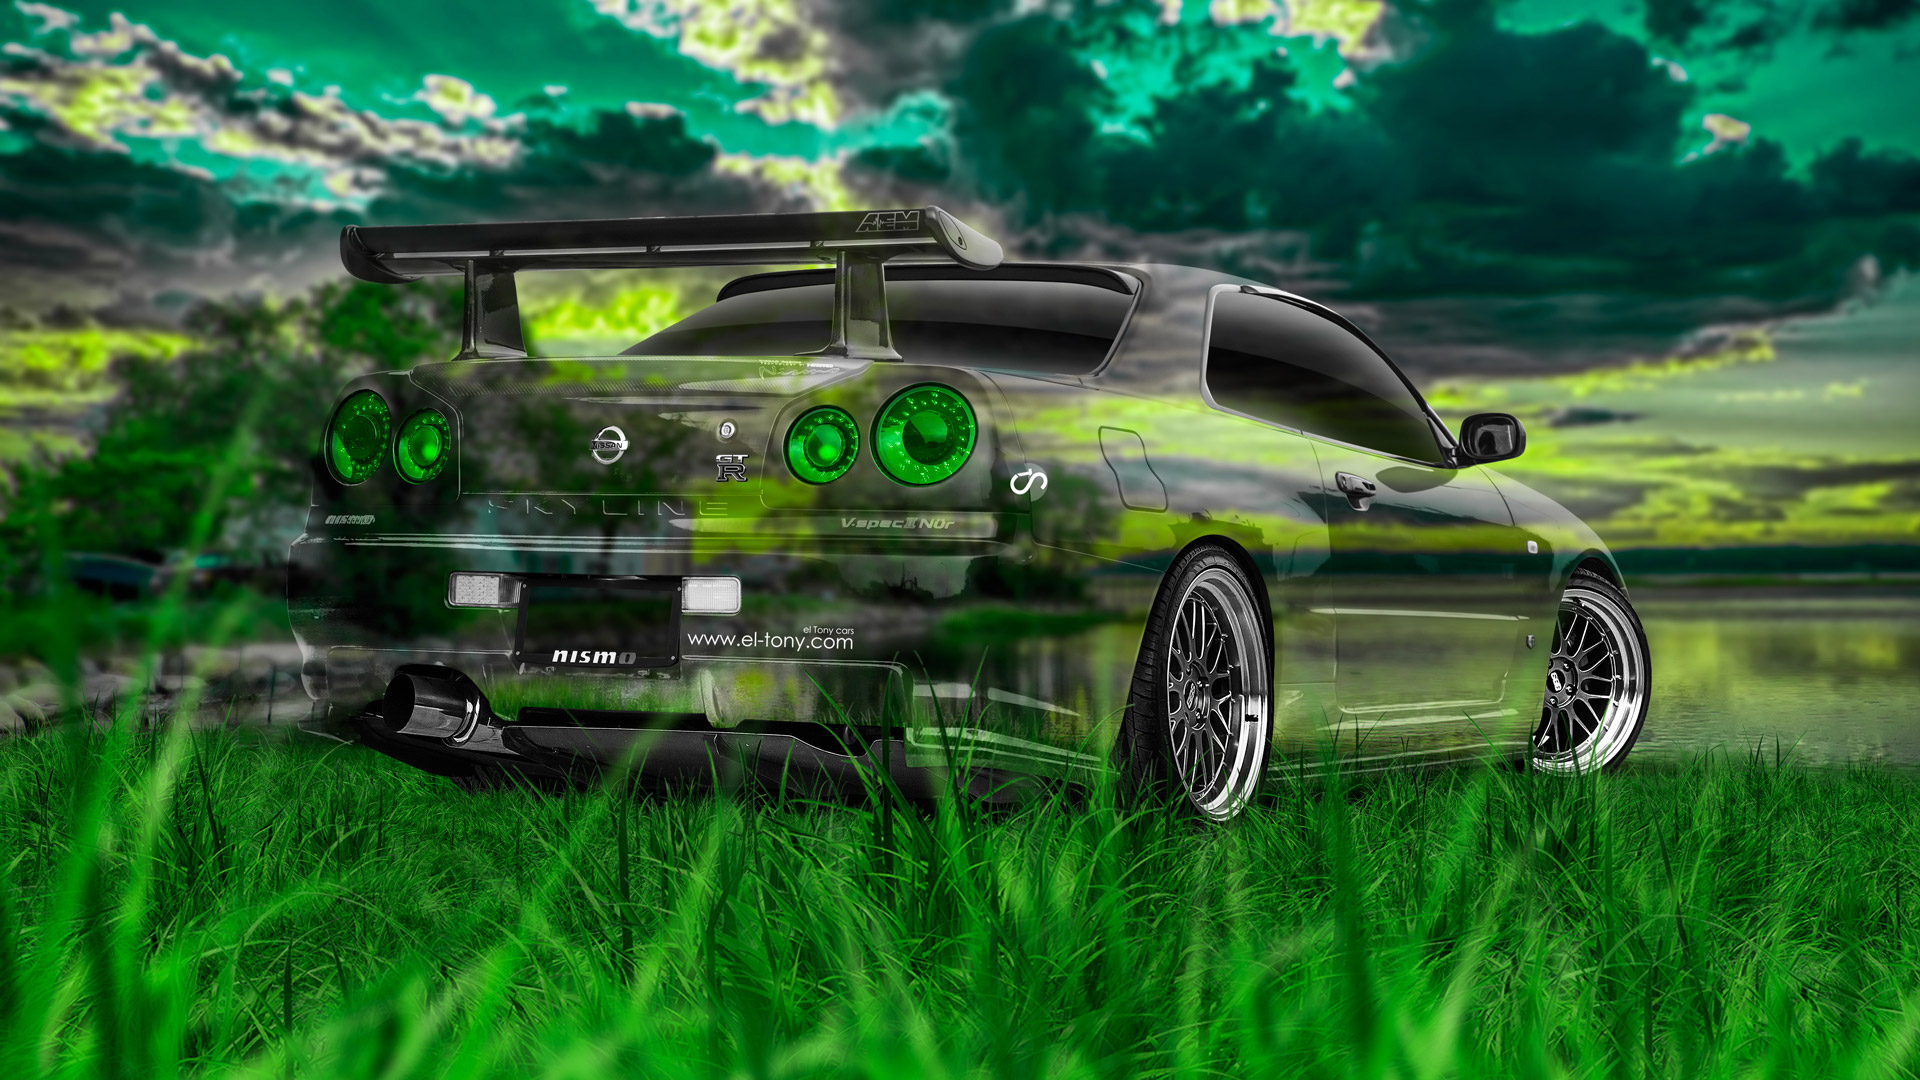 Amazing Nissan Skyline GTR R34 JDM Crystal Nature Car